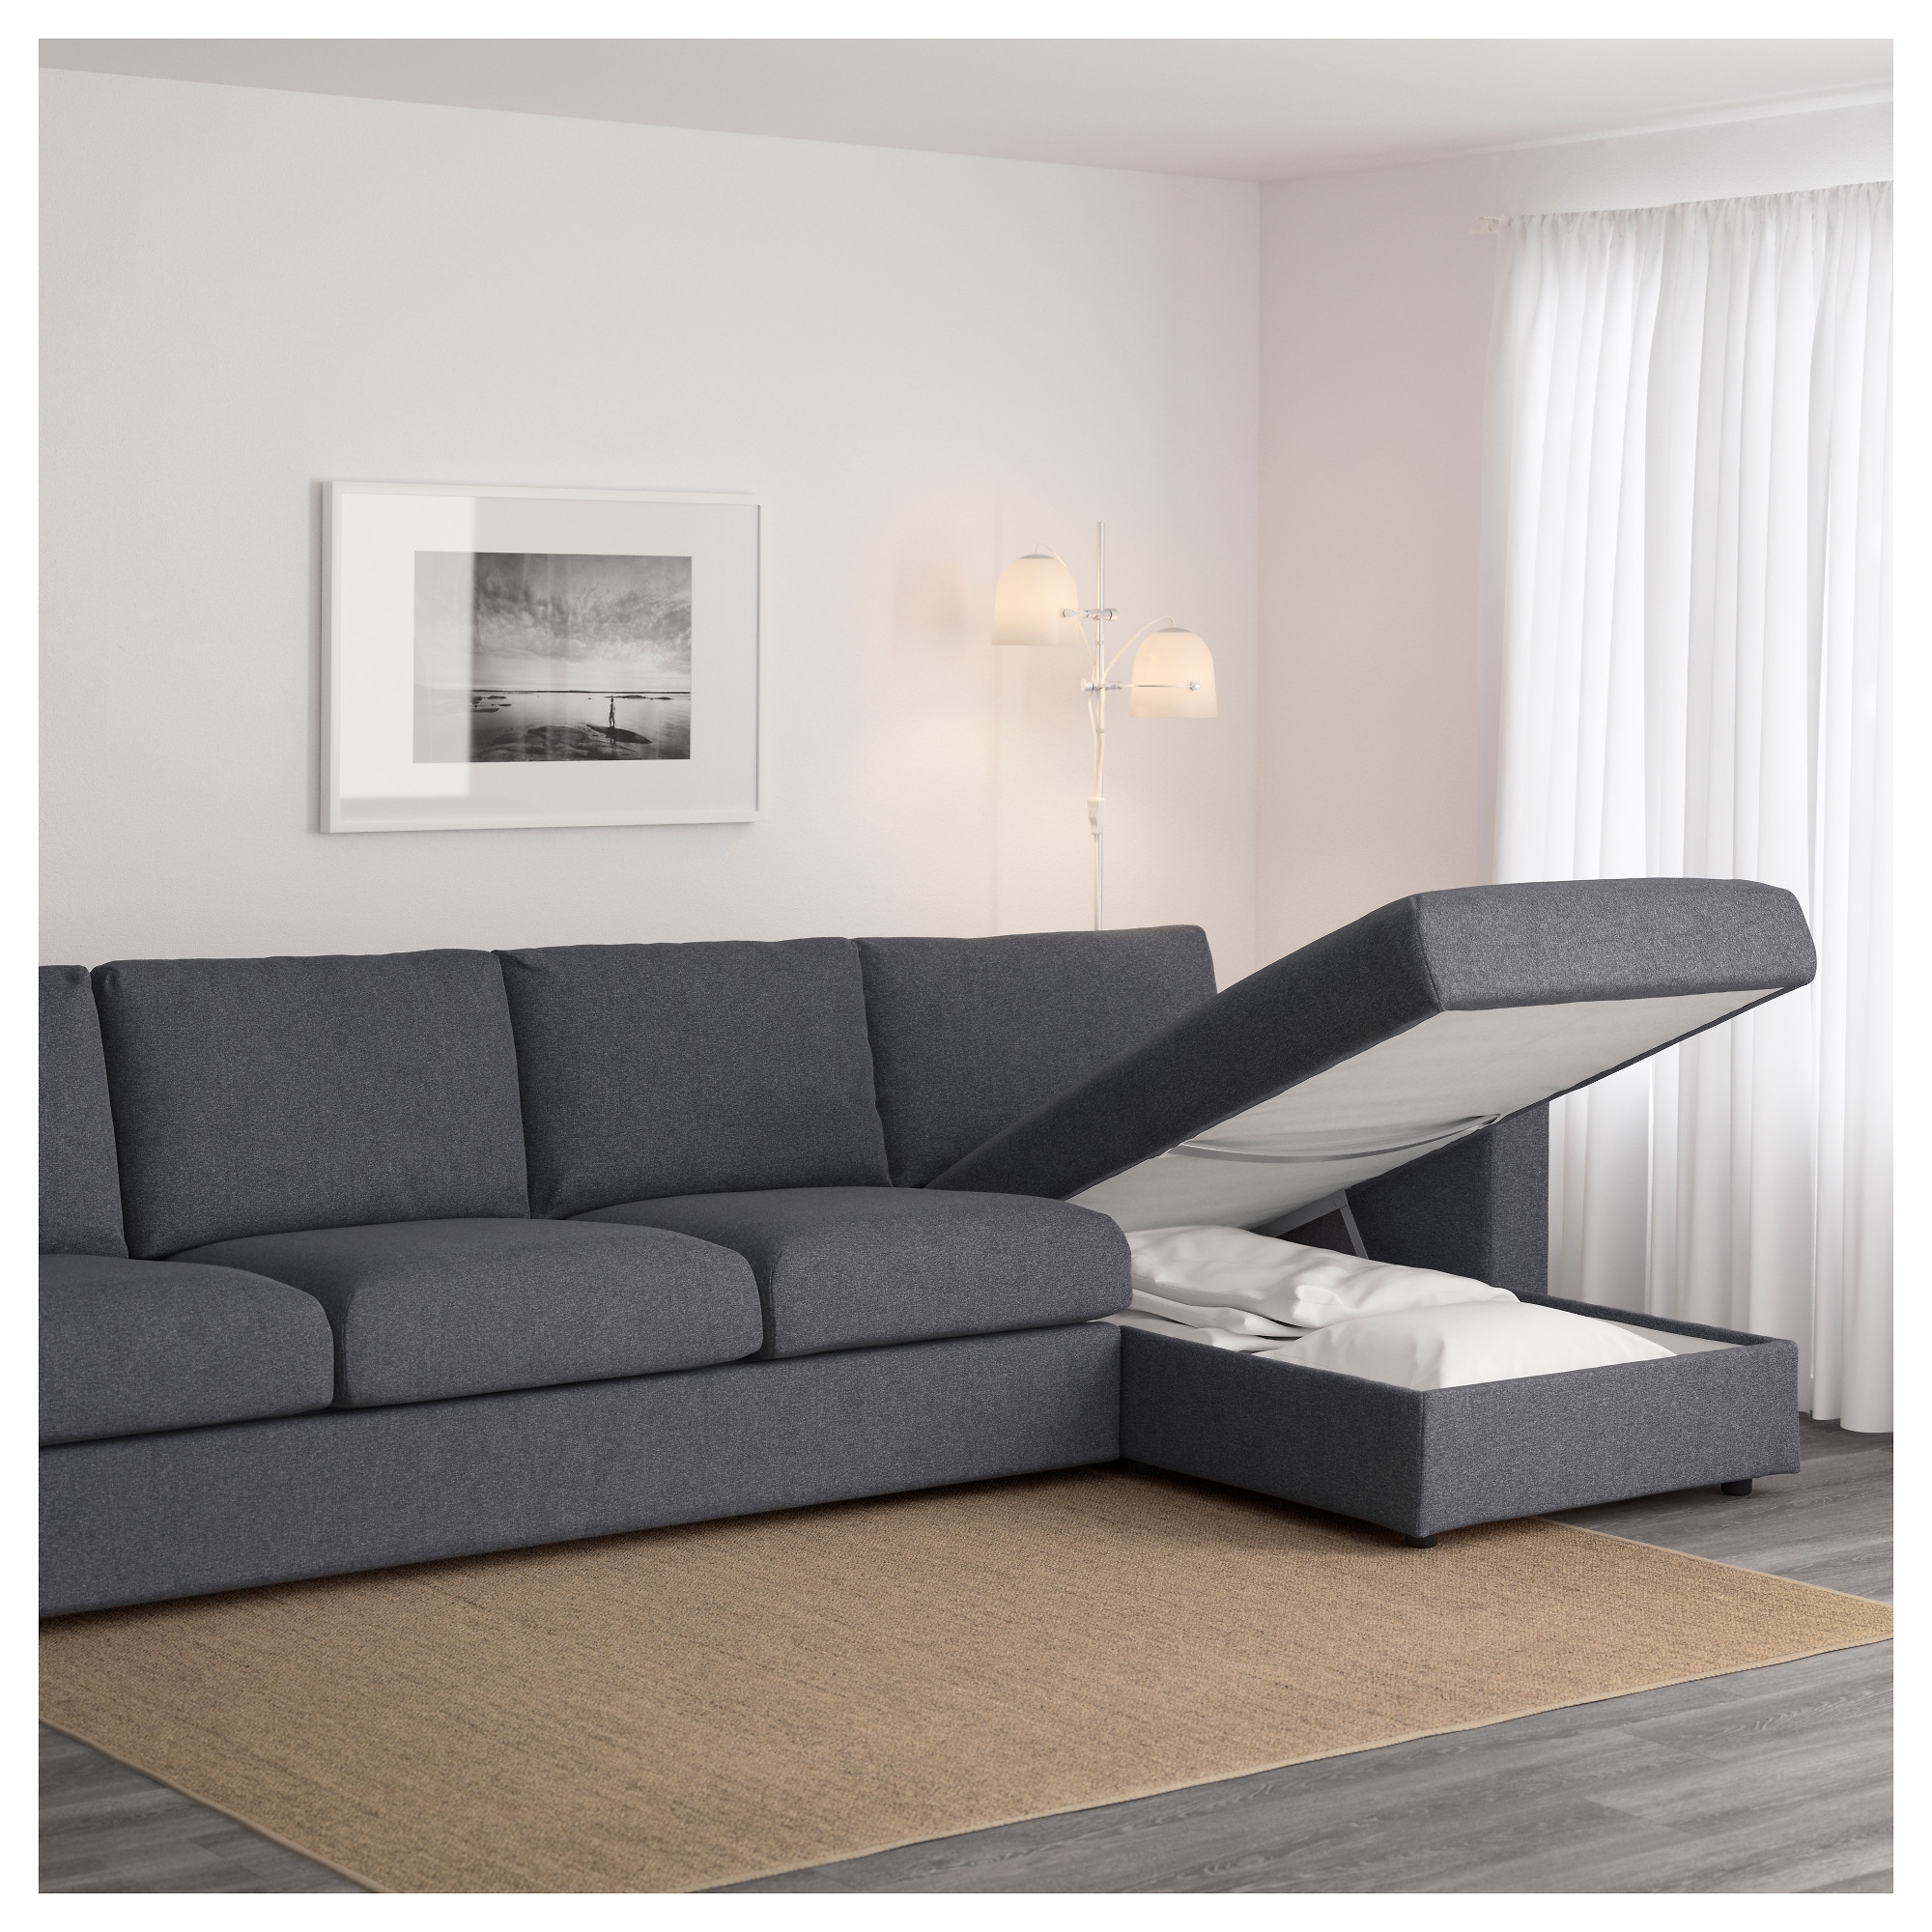 Vimle 4 Seat Sofa With Chaise Longue/gunnared Medium Grey – Ikea Intended For Latest 4 Seat Sofas (View 8 of 20)